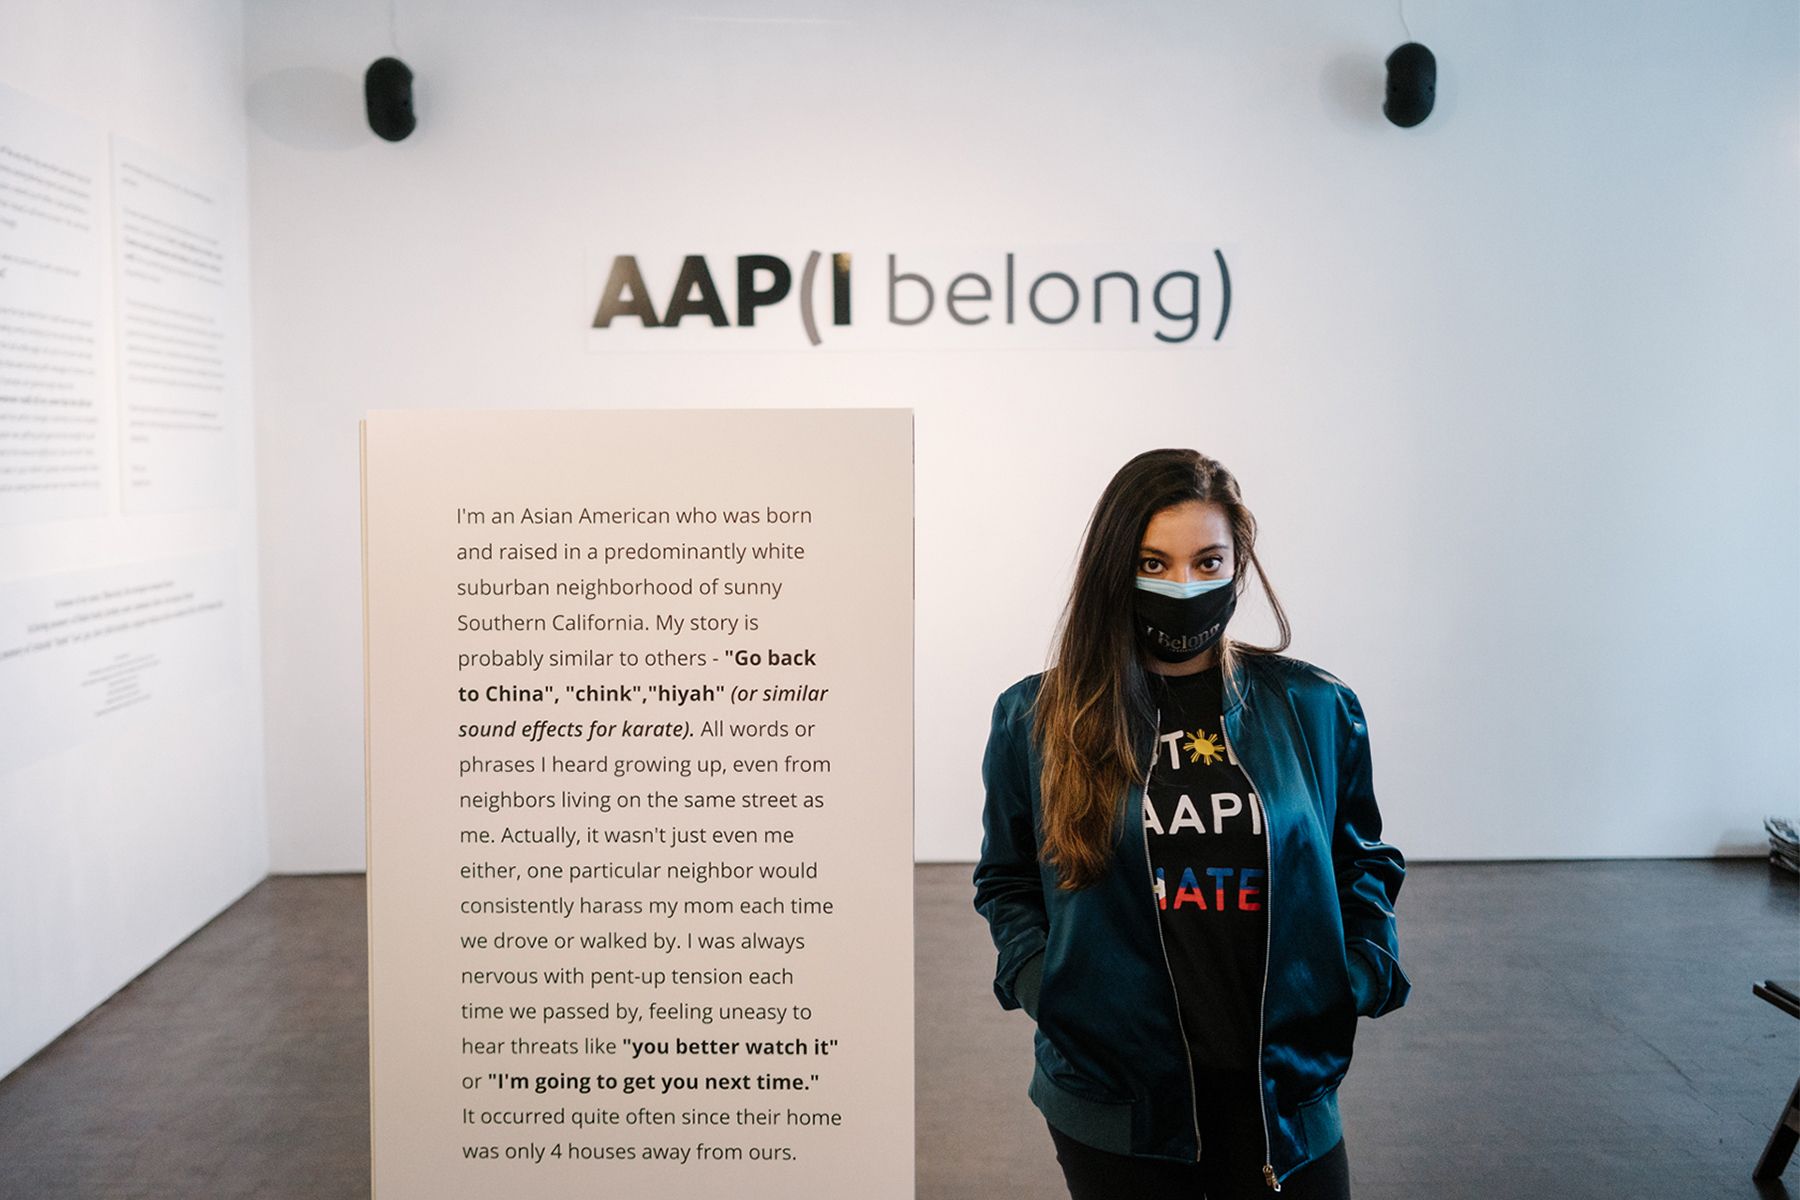 Elizabeth Kari at the AAP(I Belong) exhibition at the Museum of Chinese in America in New York City.